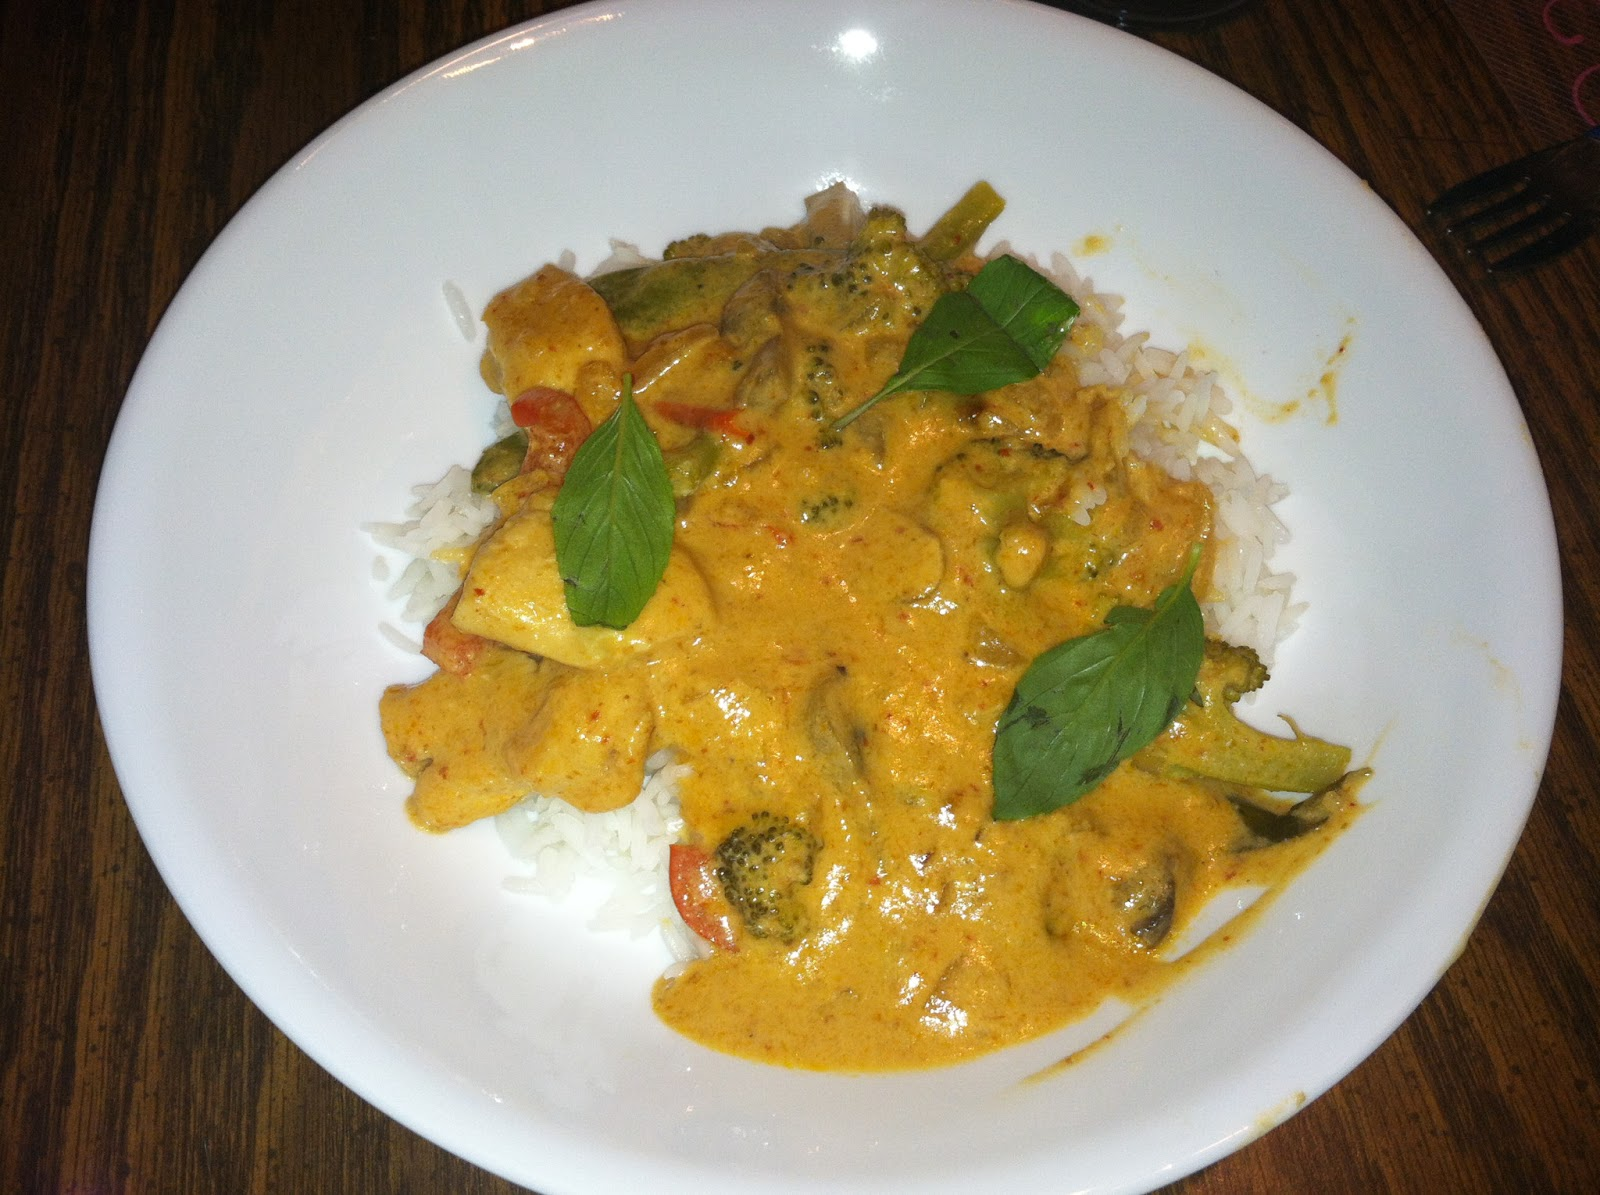 Finished product - delicious homemade Panang Curry!